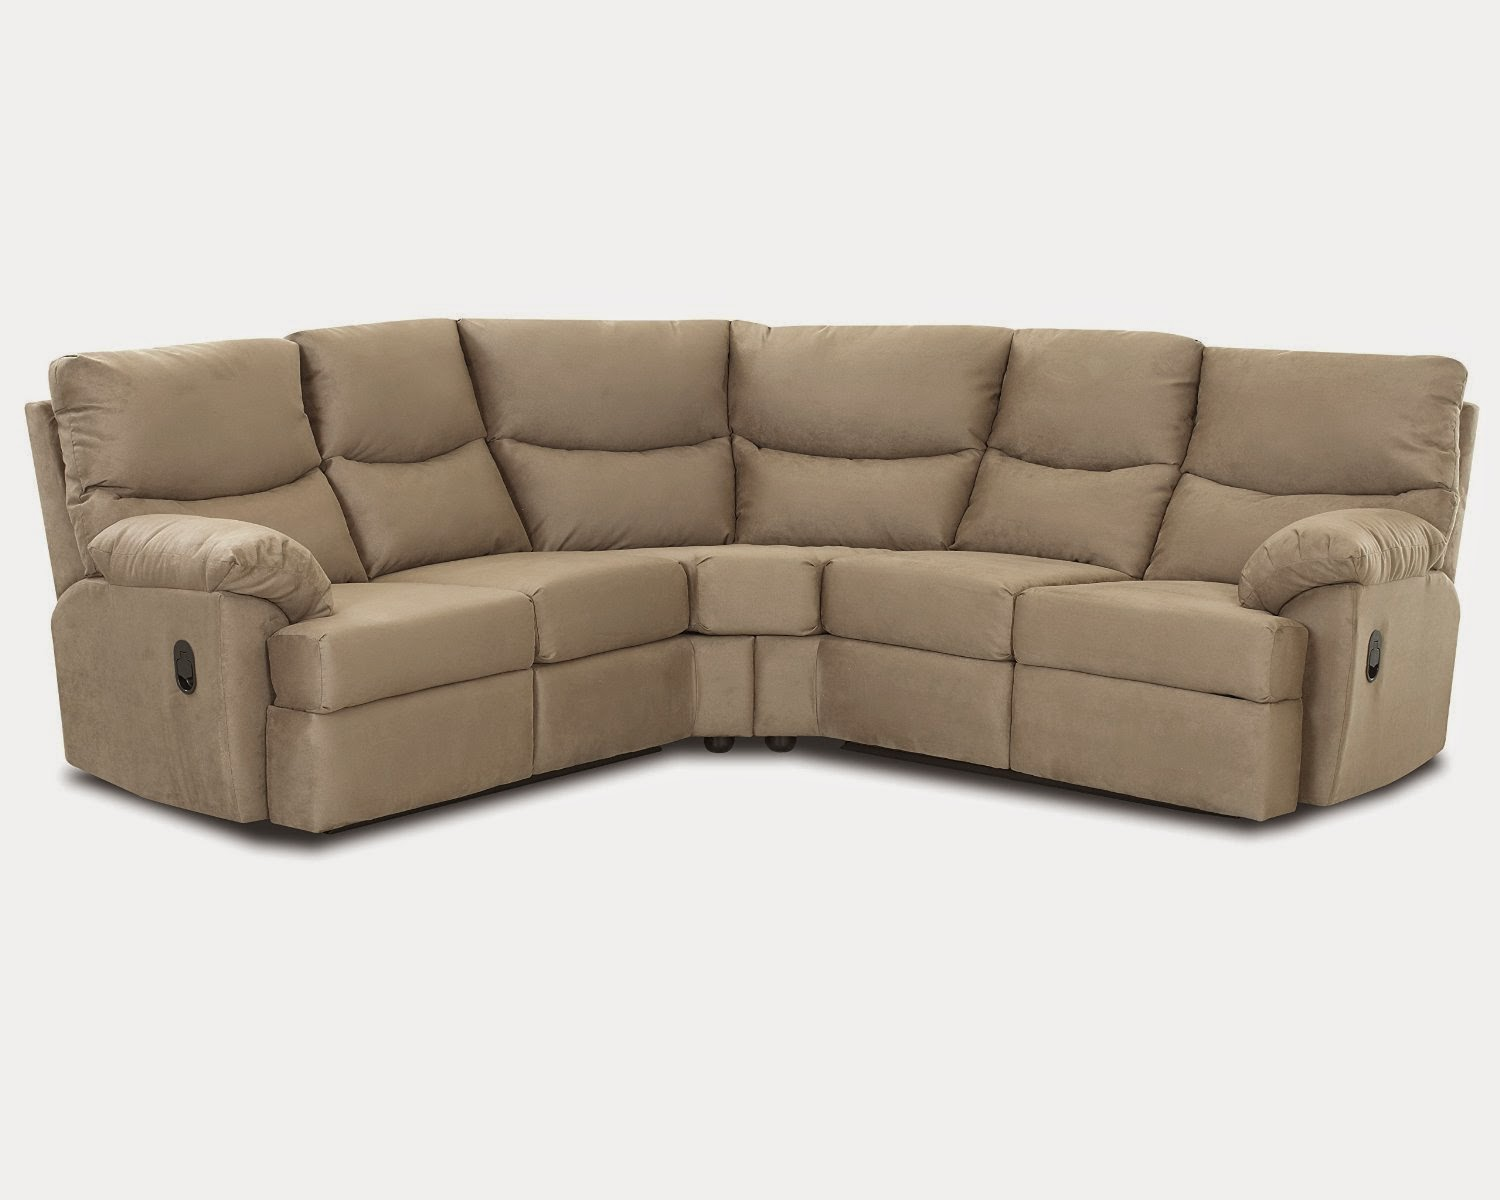 cheap recliner sofas for sale april 2015. Black Bedroom Furniture Sets. Home Design Ideas